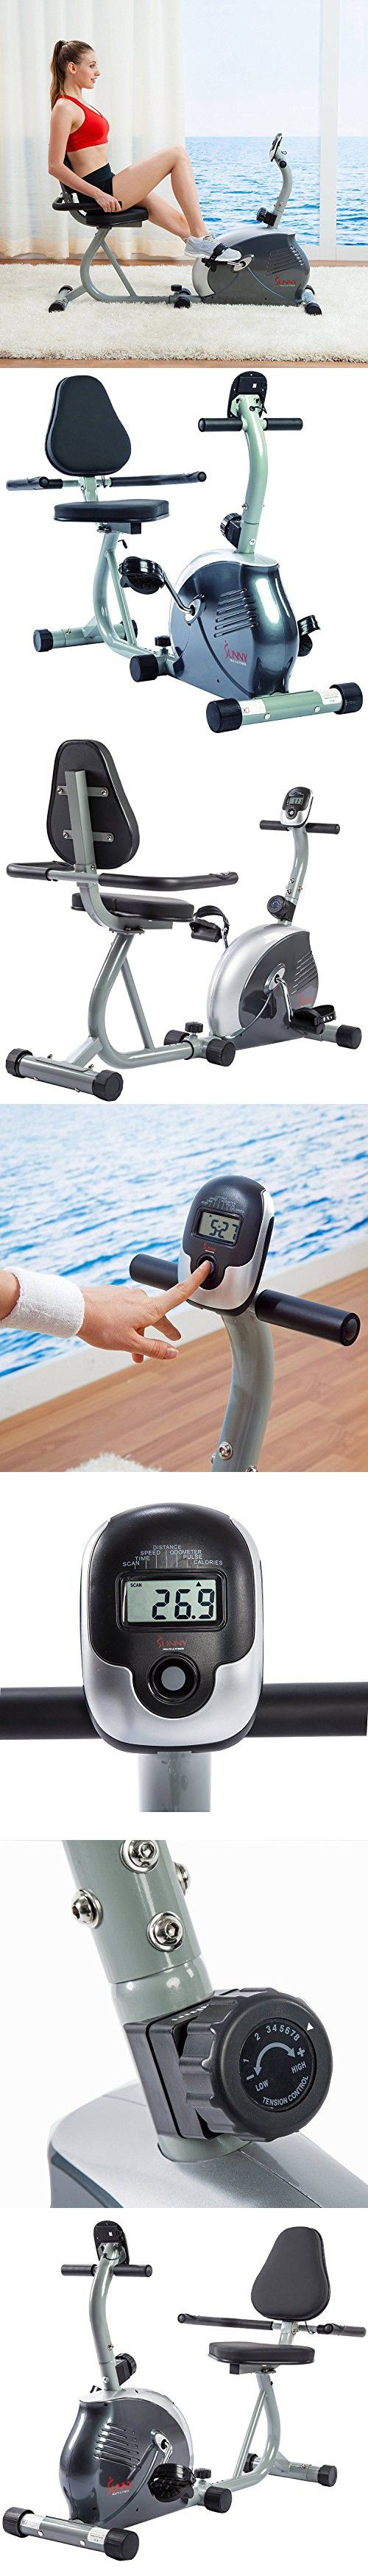 Magnetic Recumbent Bike Cycling Exercise Cardio Health Fitness Training Home Gym Workout Machine Equipment Stationary Bicycle Magnetic Tension Control System Adjustable Frame With Heart Rate Sensors